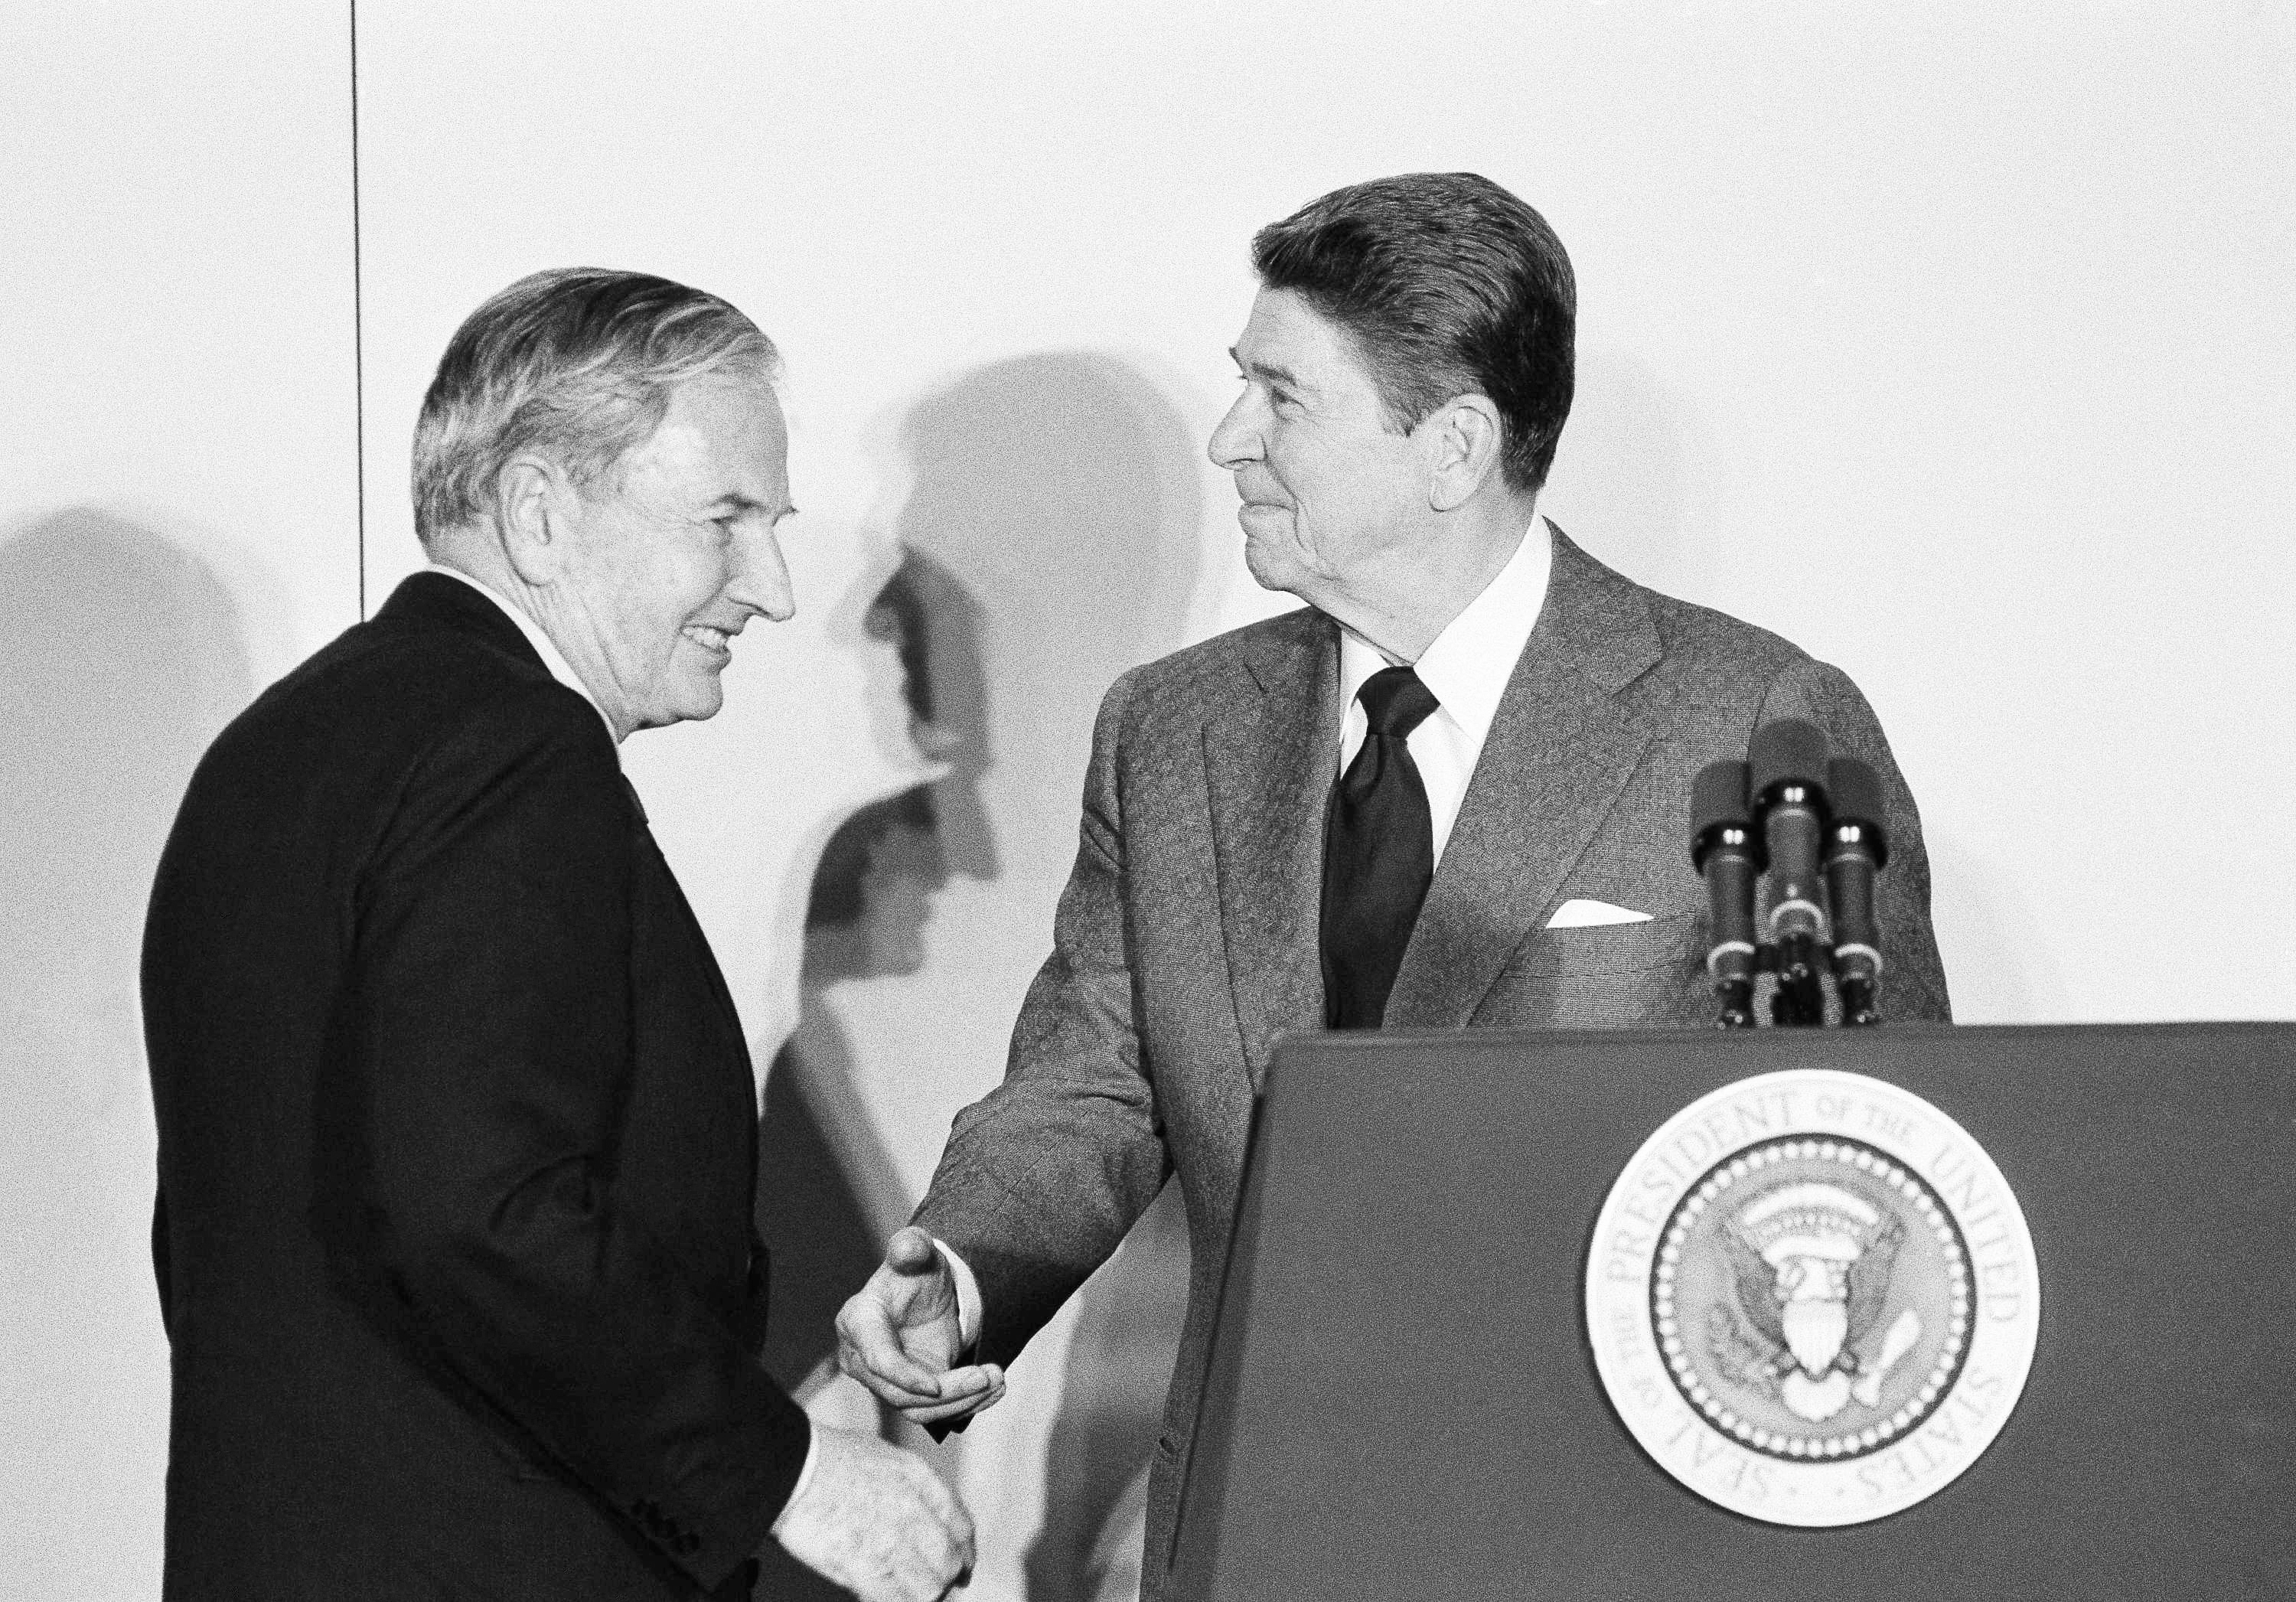 Obit David Rockefeller FILE - In this May 8, 1984 file photo, David Rockefeller, left, chairman of the Council Americas, shakes hands with President Ronald Reagan at the State Department in Washington. David Rockefeller, the billionaire philanthropist who was the last of his generation in the famously philanthropic Rockefeller family died, Monday, March 20, 2017, according to a family spokesman. (AP Photo/Ira Schwarz, File)